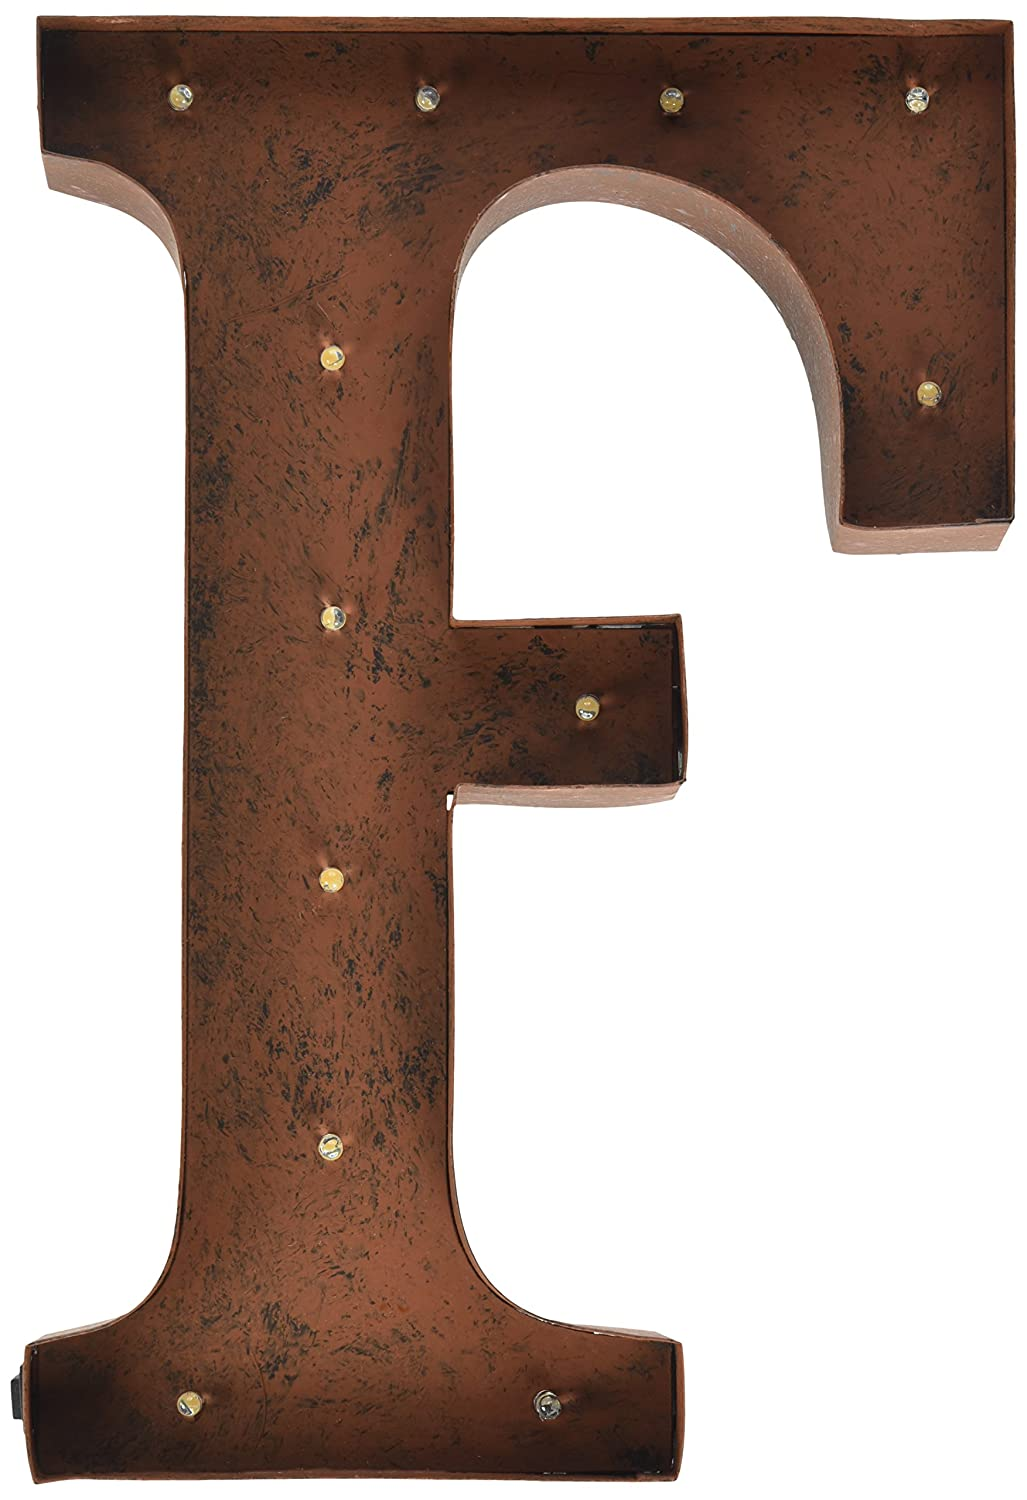 AmazonCom The Gerson Company F Led Lighted Metal Letter With